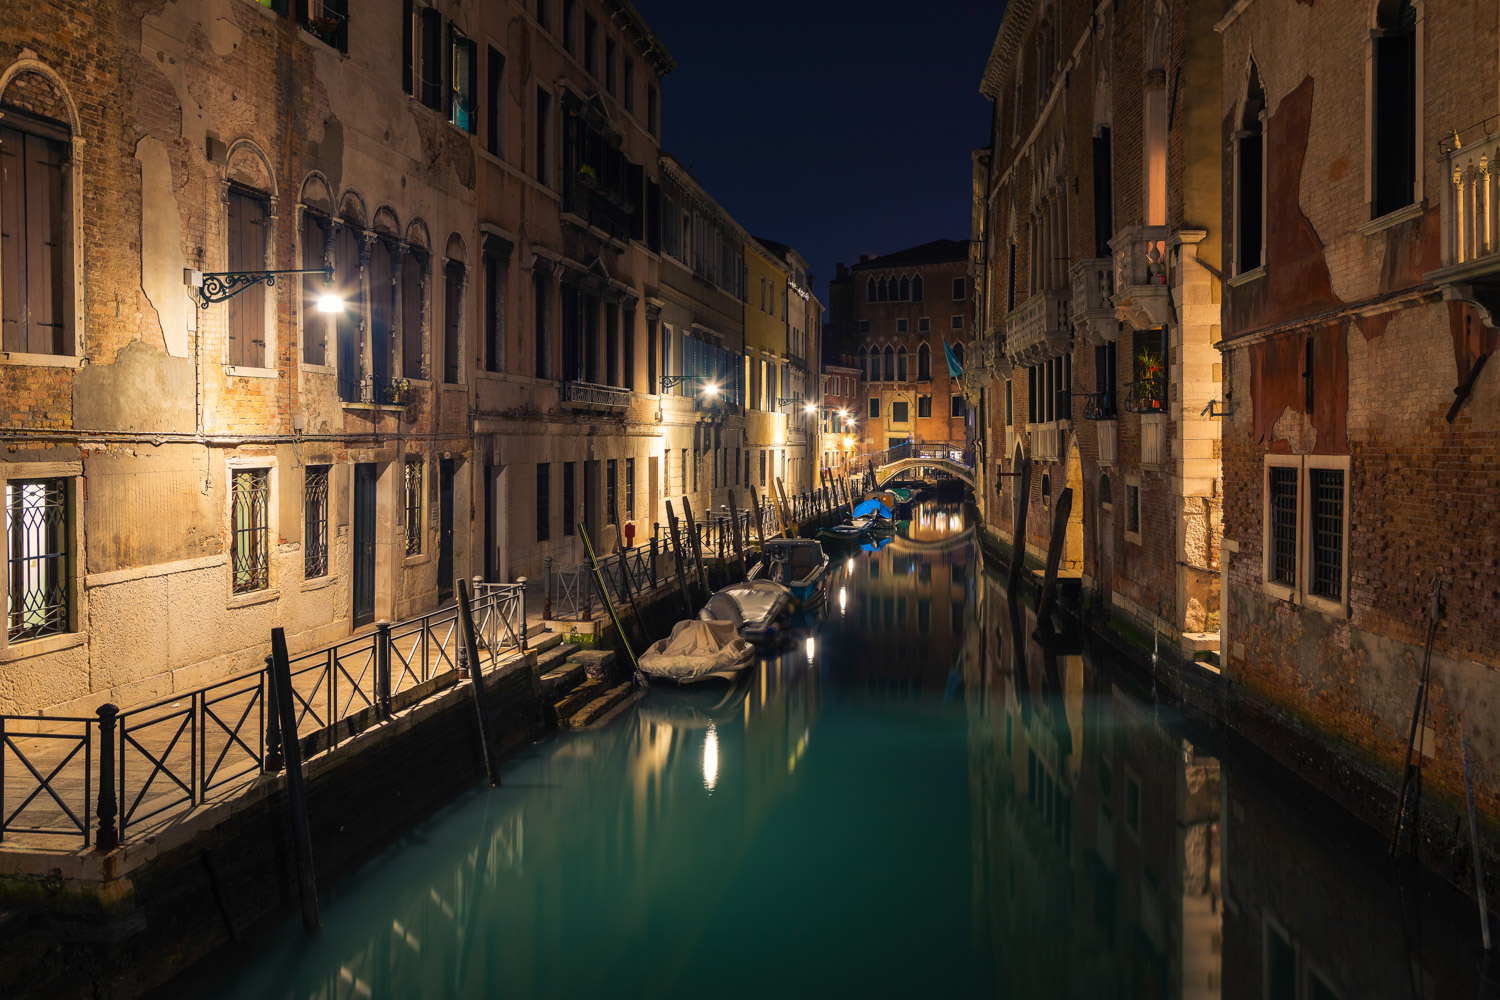 Venice Water Canal at Night